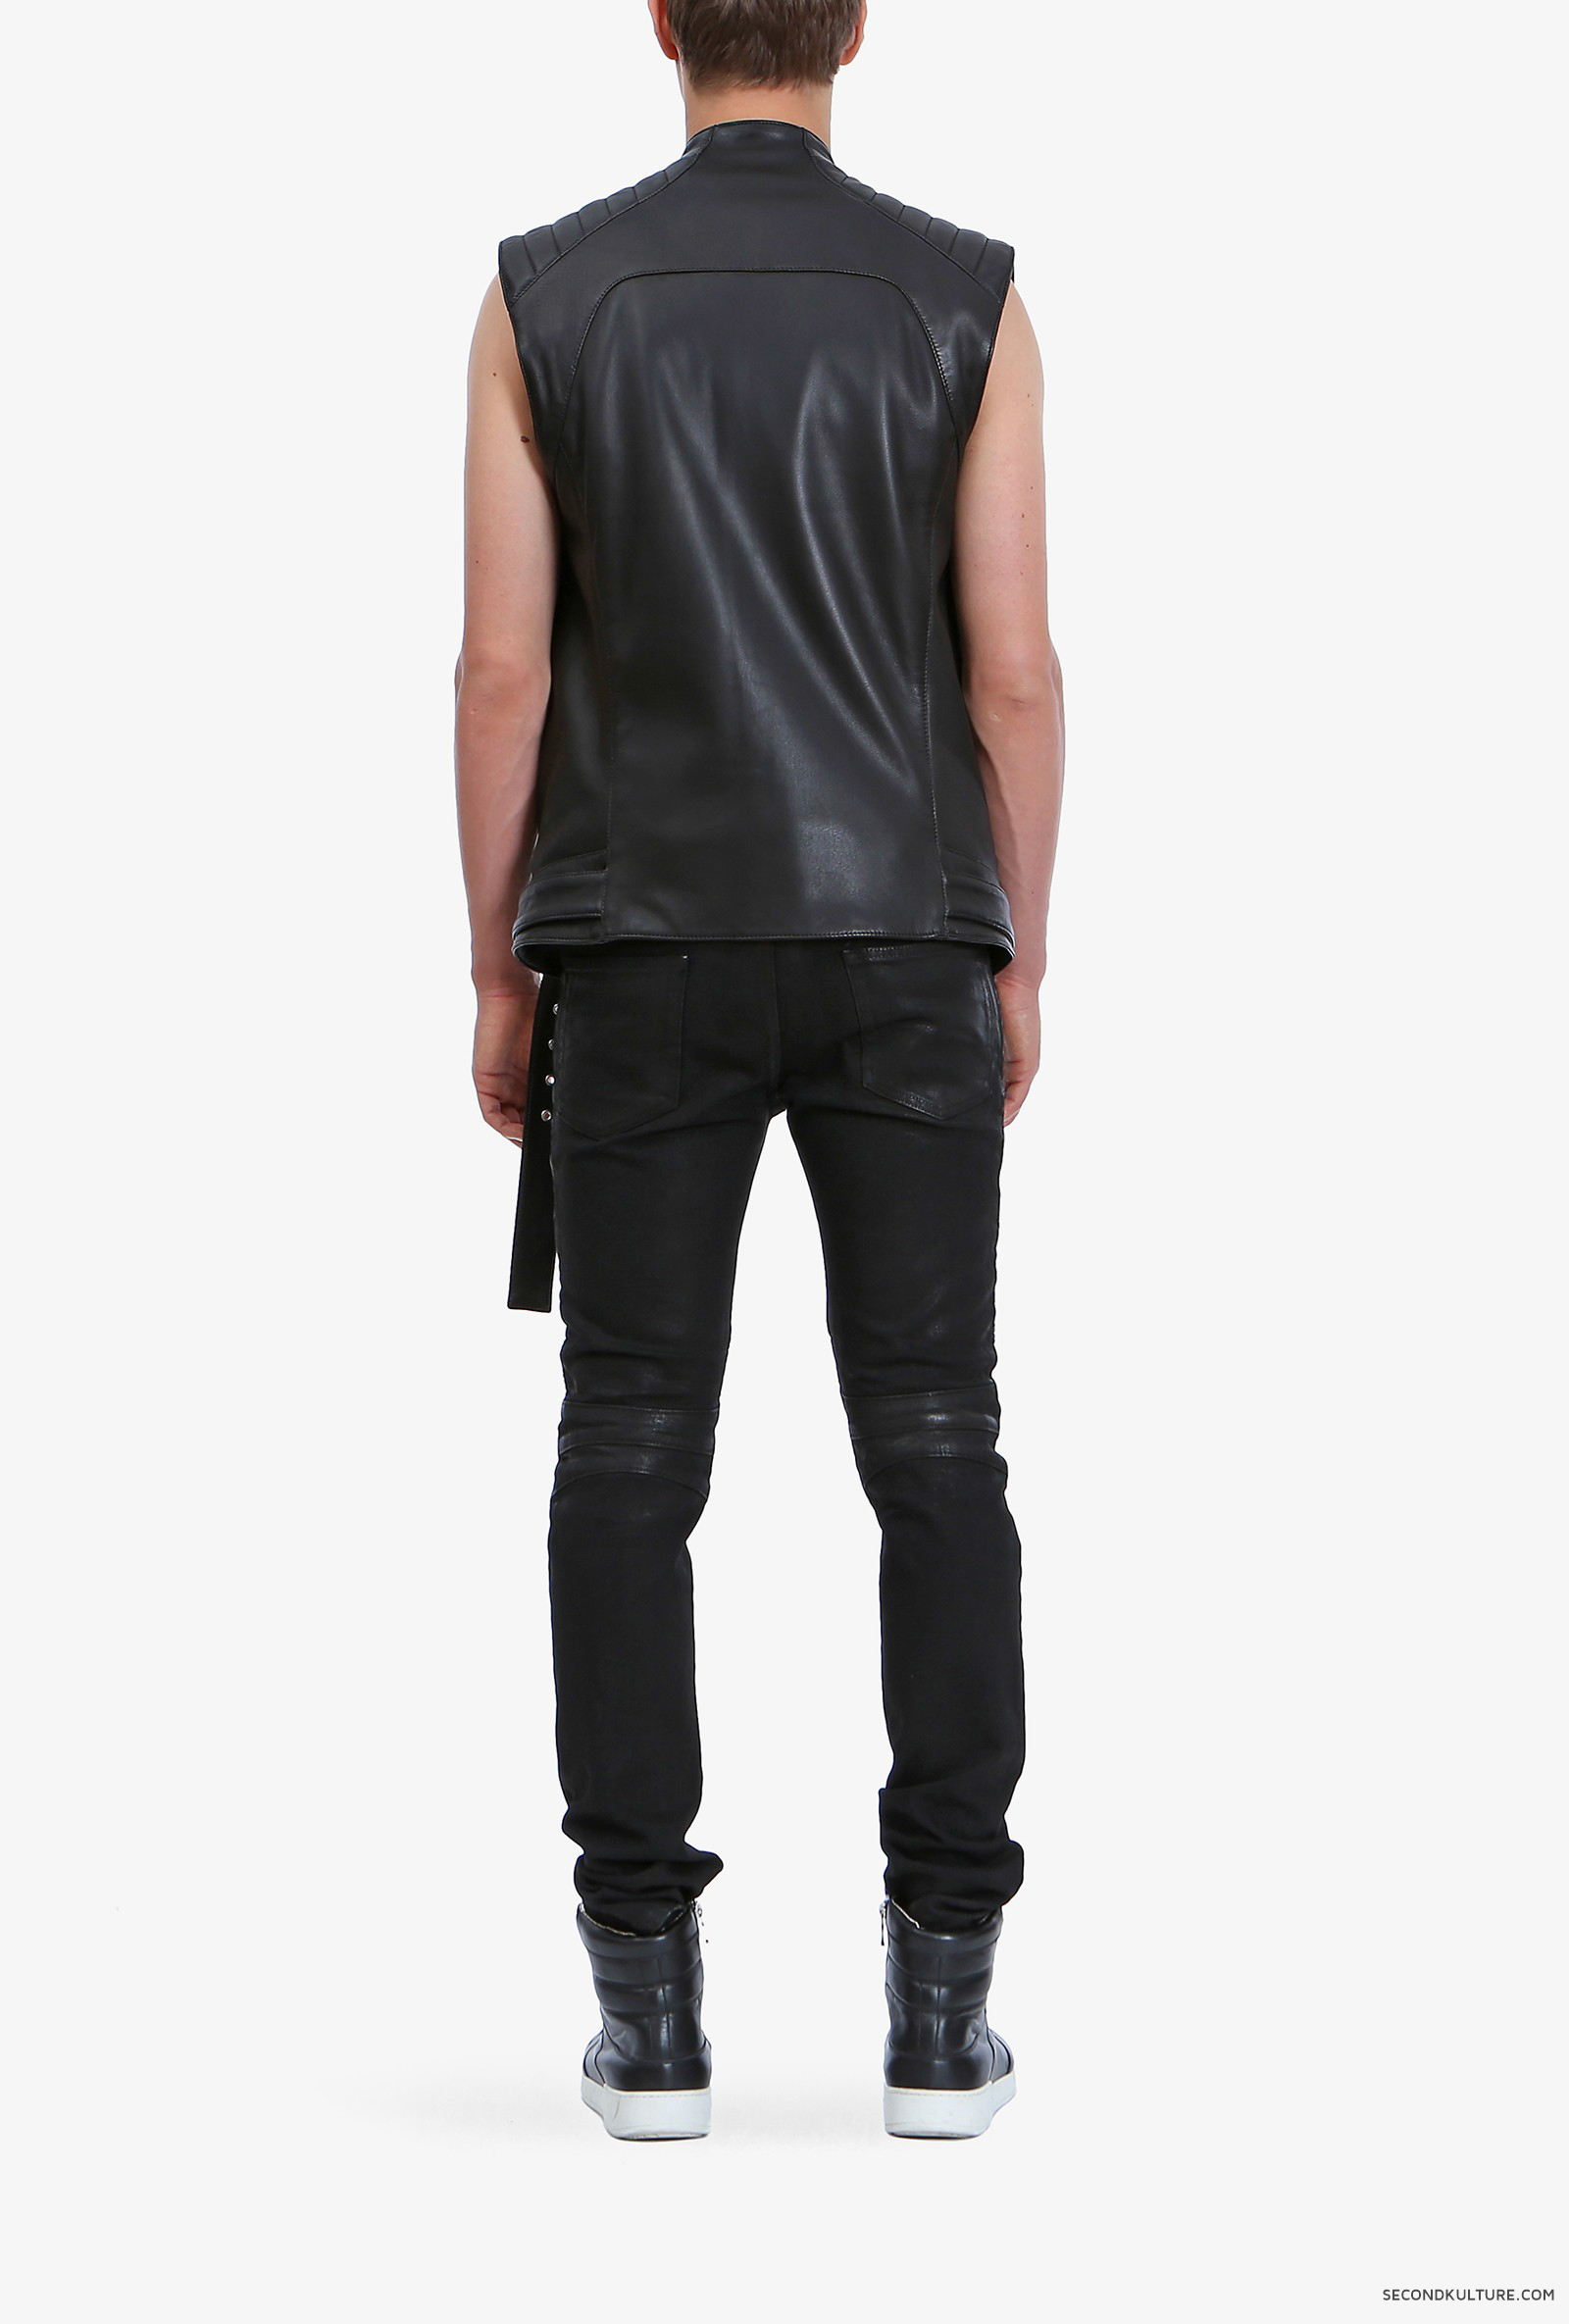 Balmain-Black-Biker-Leather-Zipped-Sleeveless-Jacket-S5HC851C601-176-3